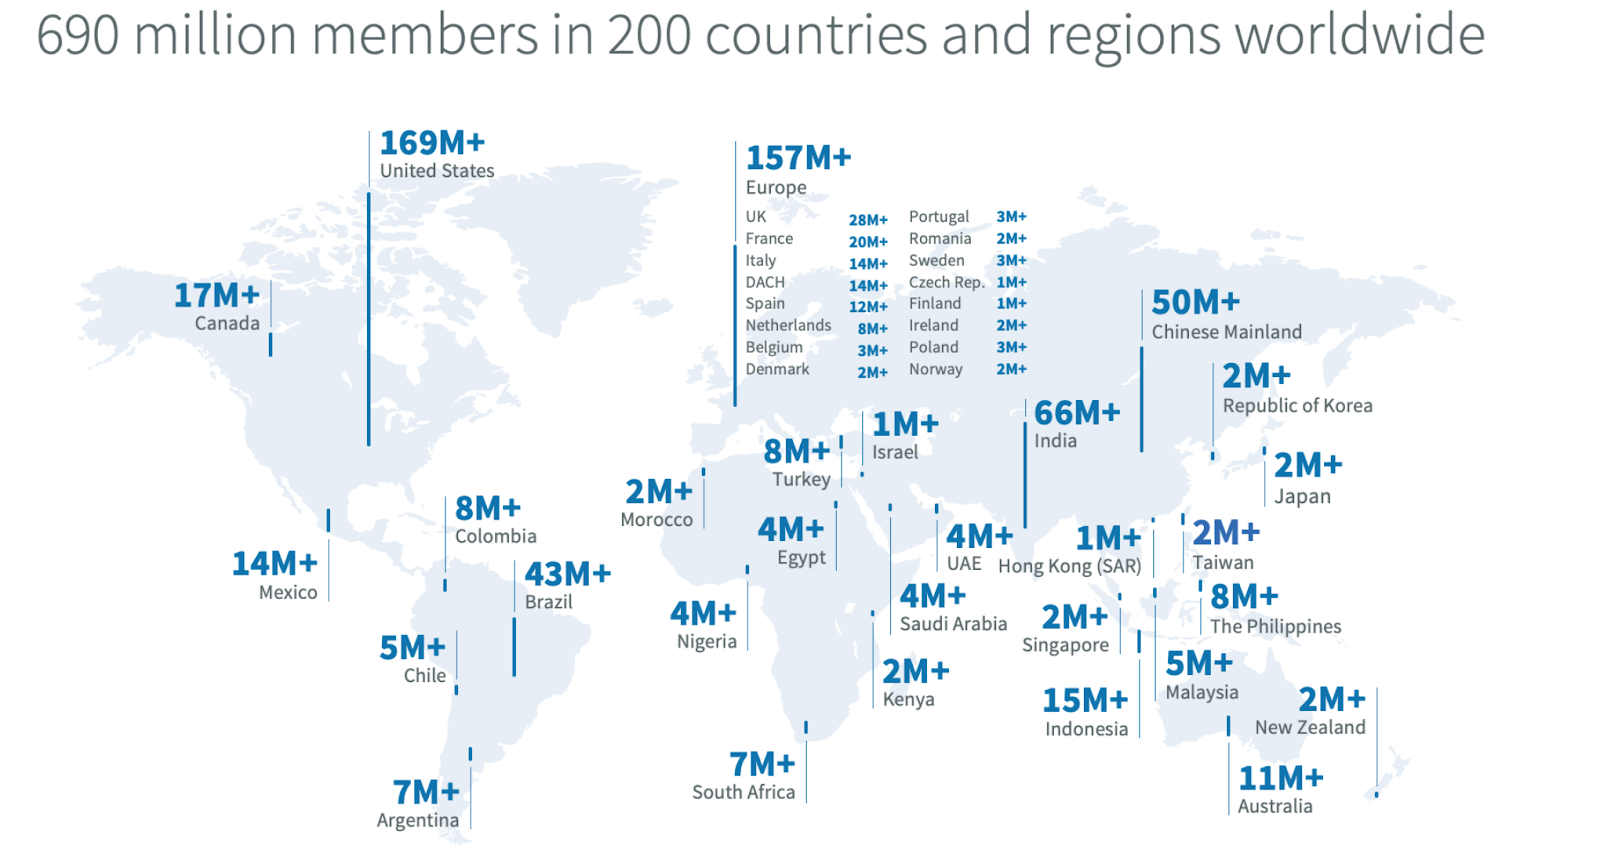 Chart showing LinkedIn users divided by countries.